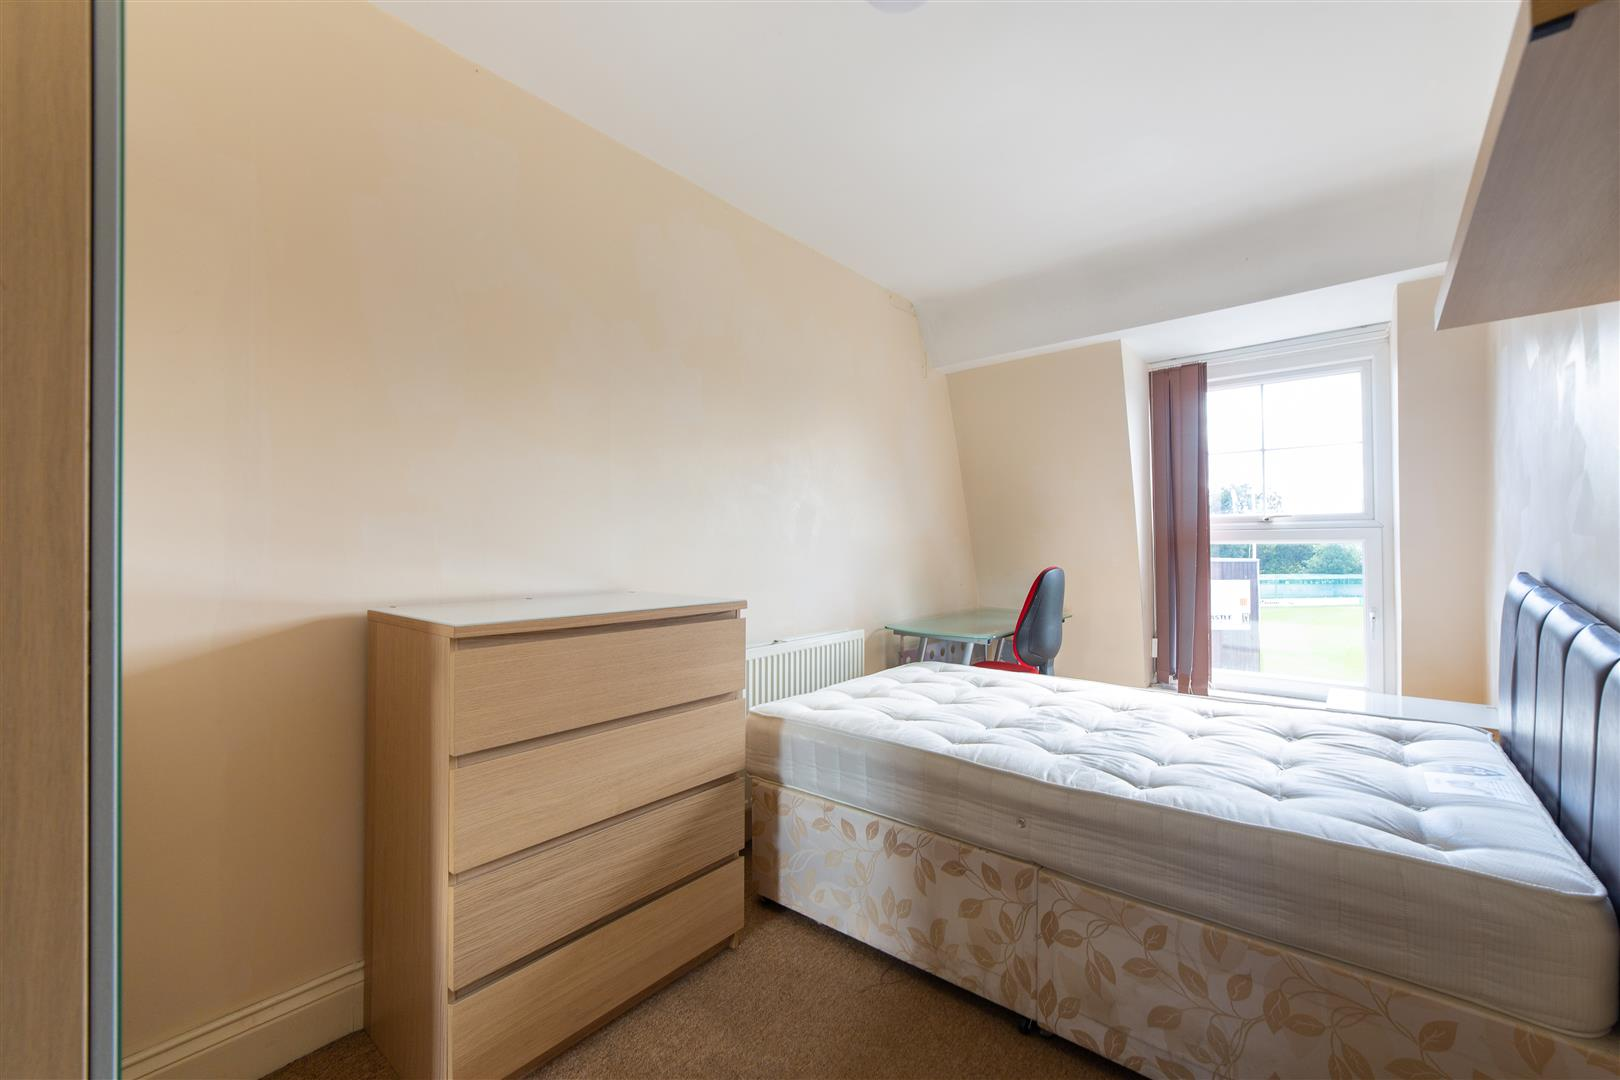 8 bed terraced house to rent in Newcastle Upon Tyne, NE2 1JS 14